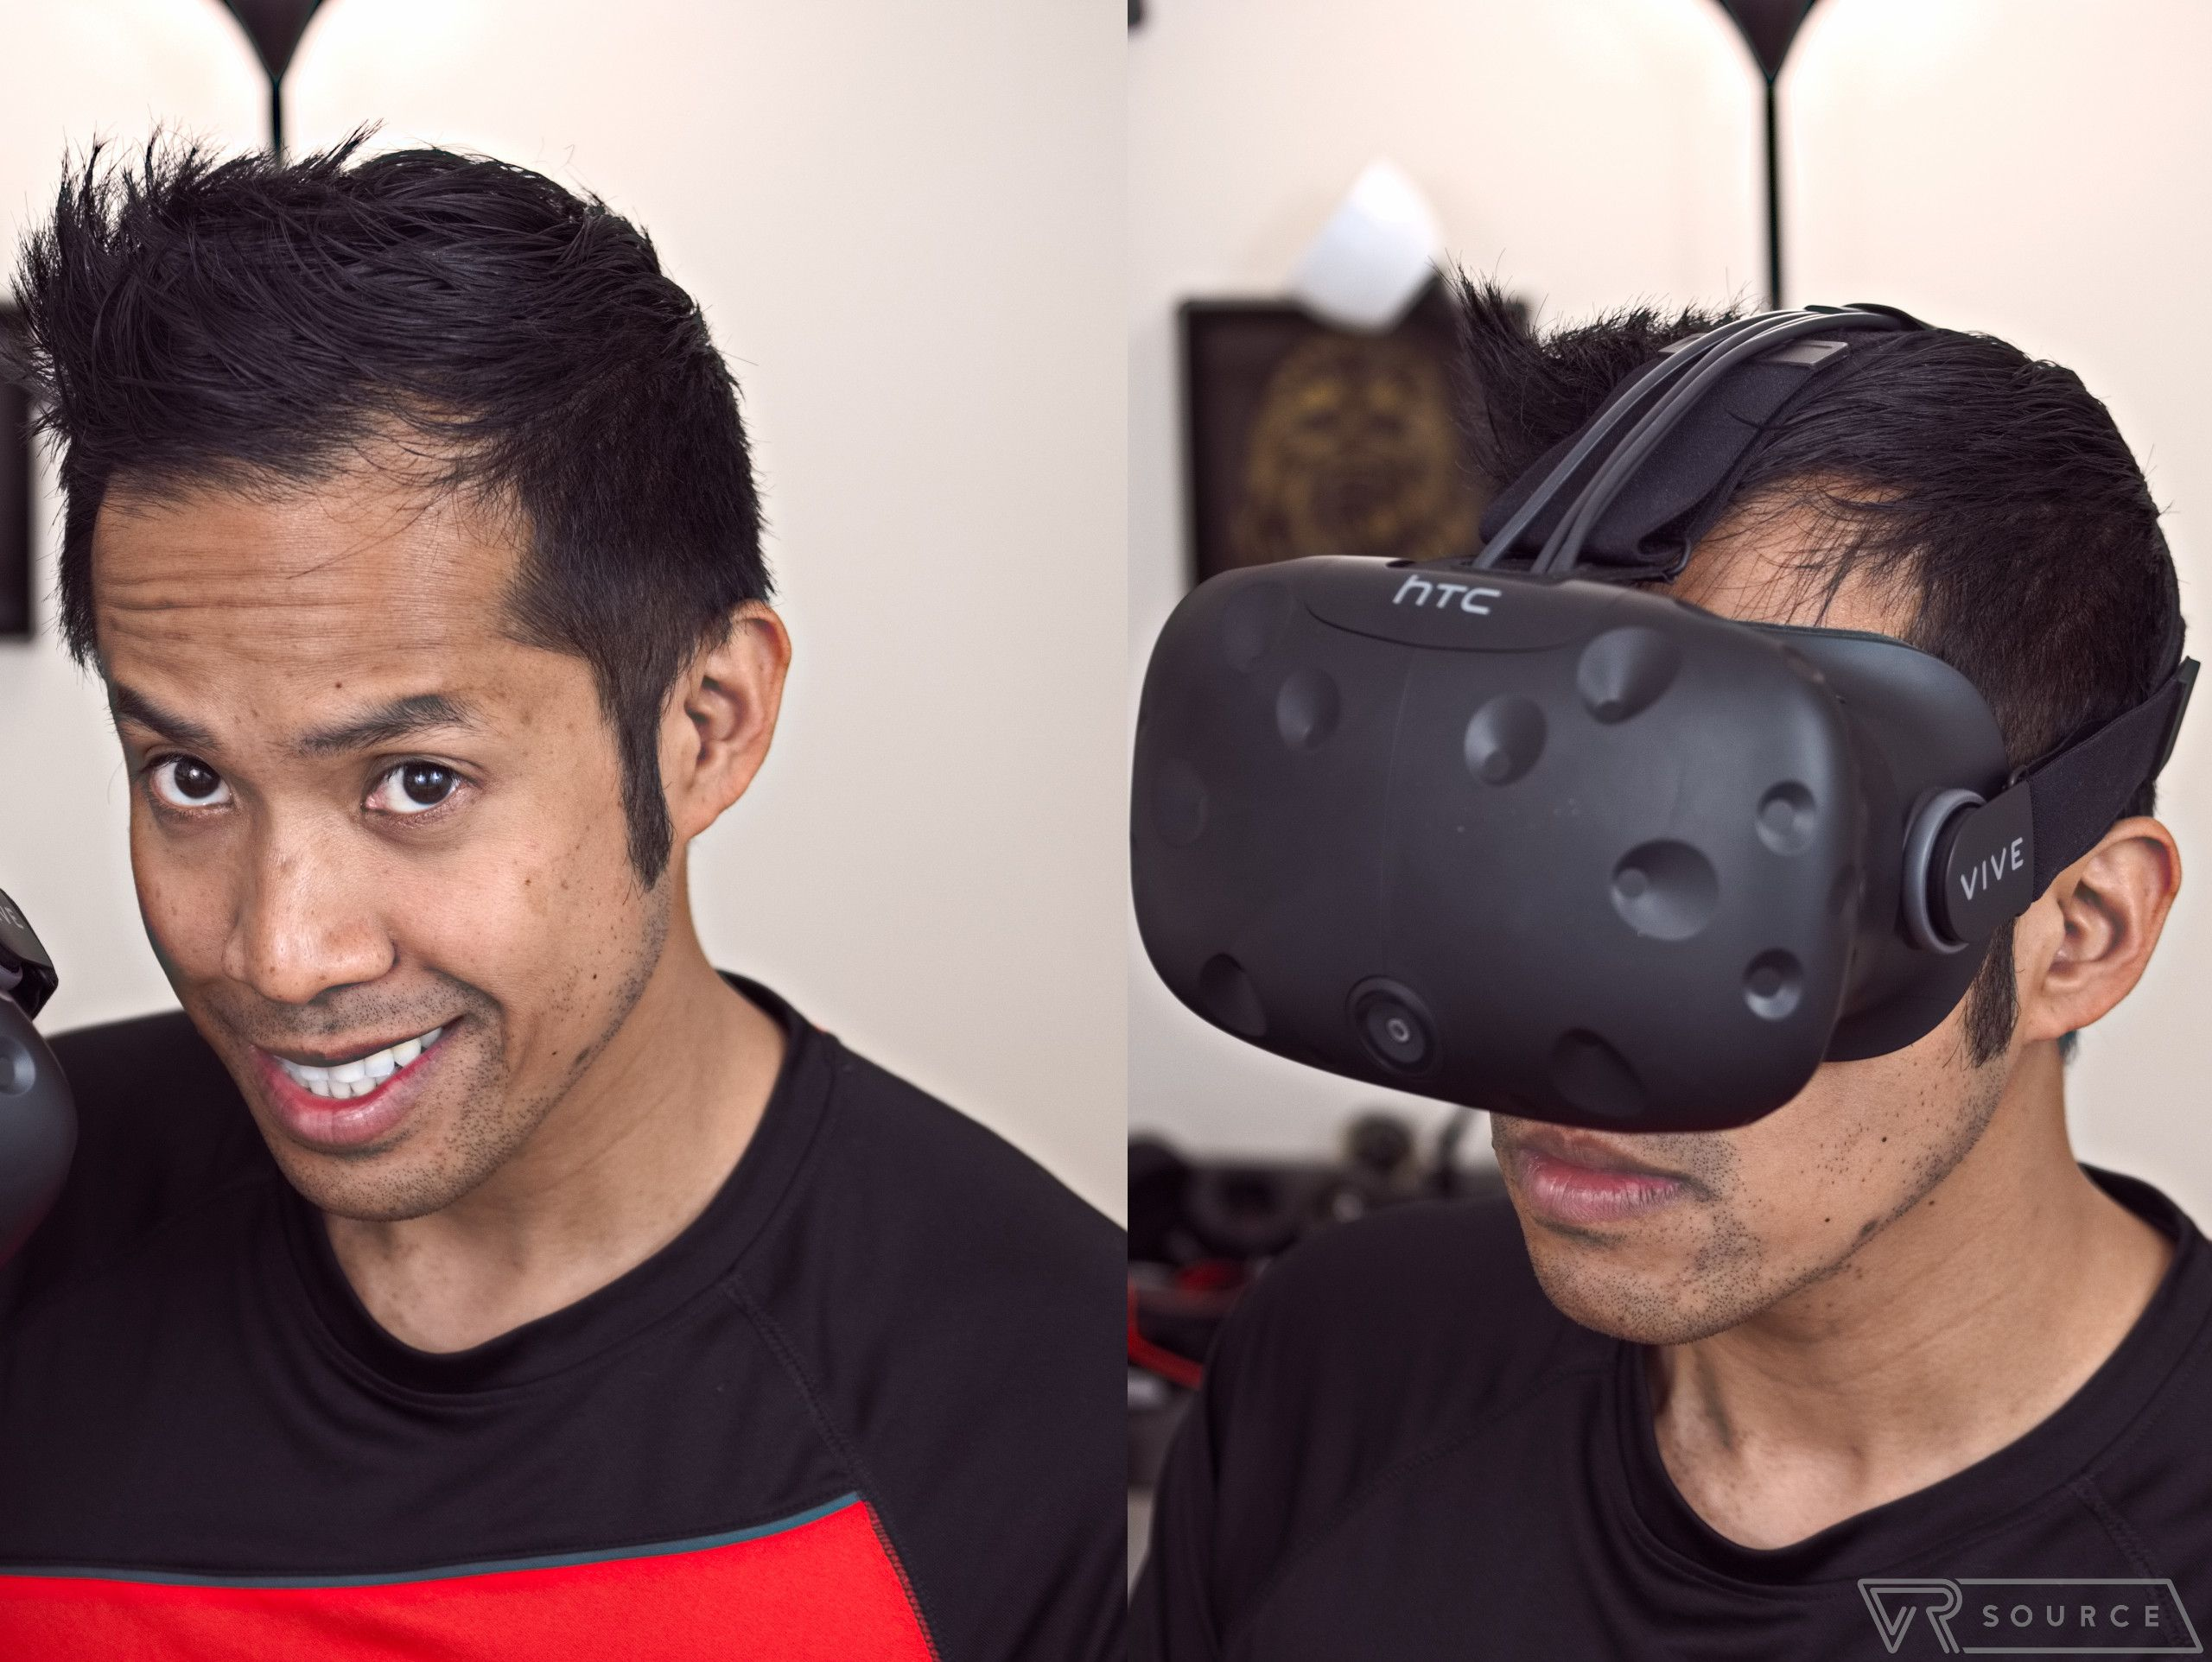 5 annoying design quirks of current VR headsets 6